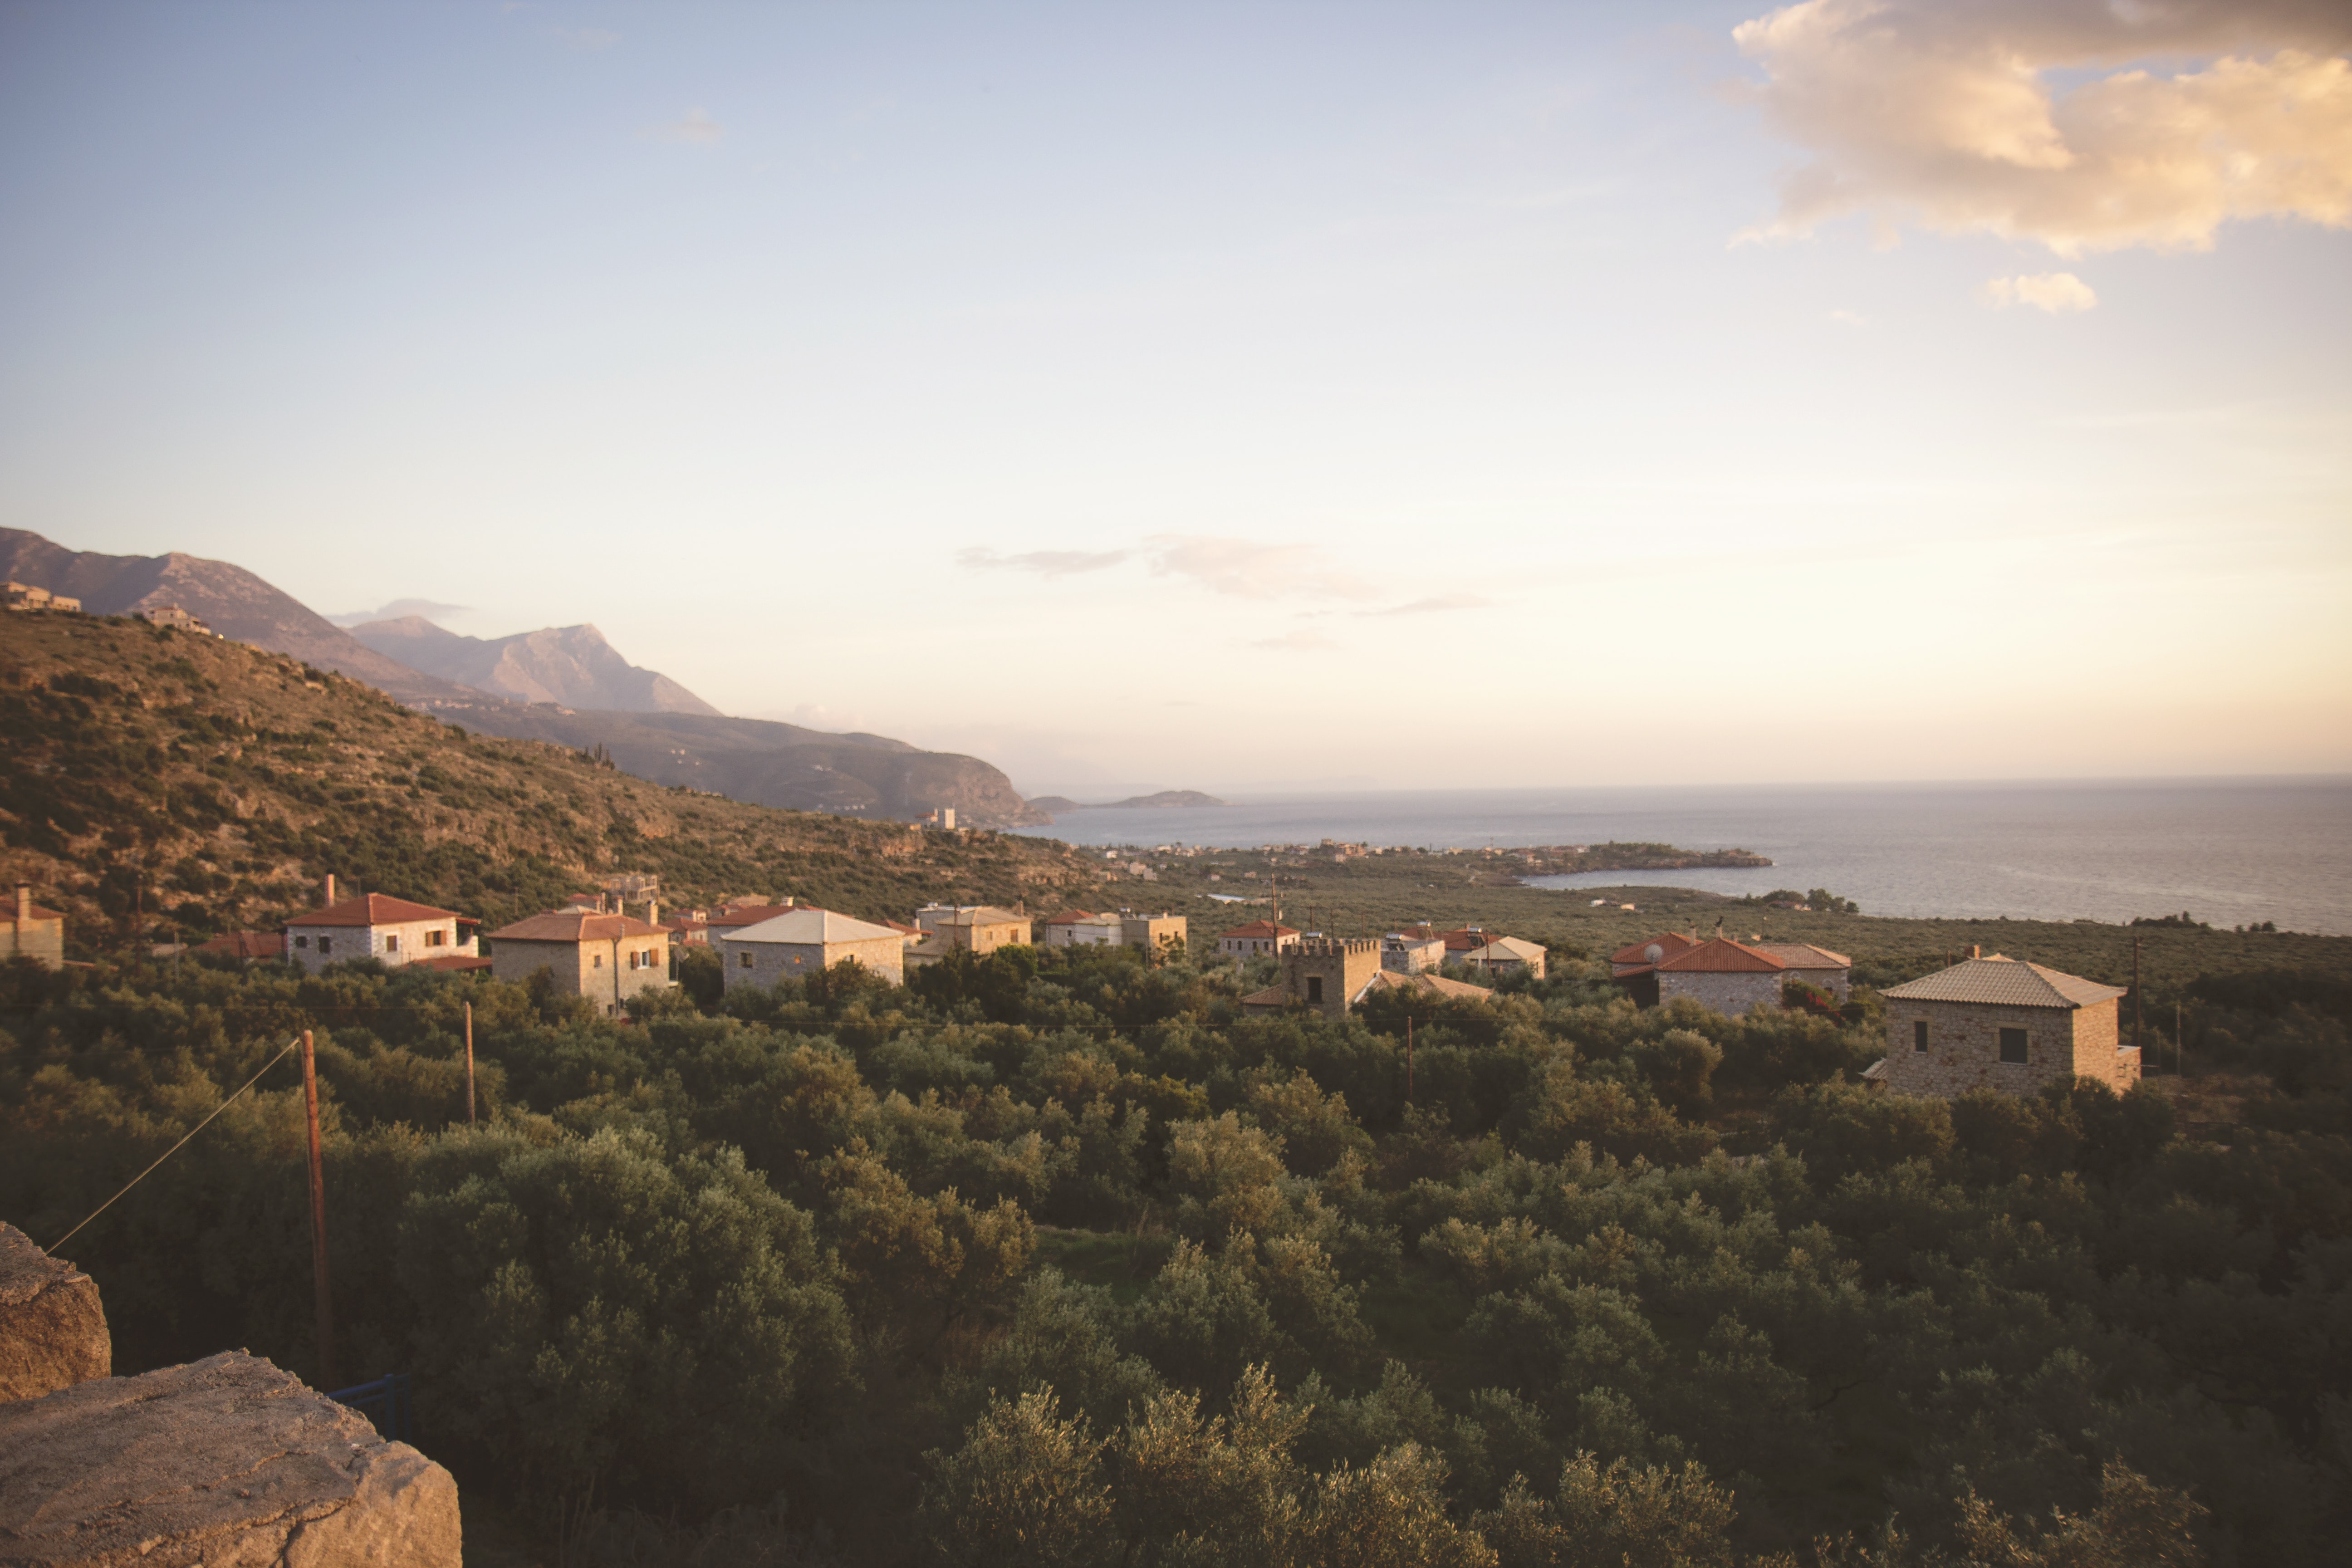 A picturesque landscape with small houses between thick shrubs on the sea coast